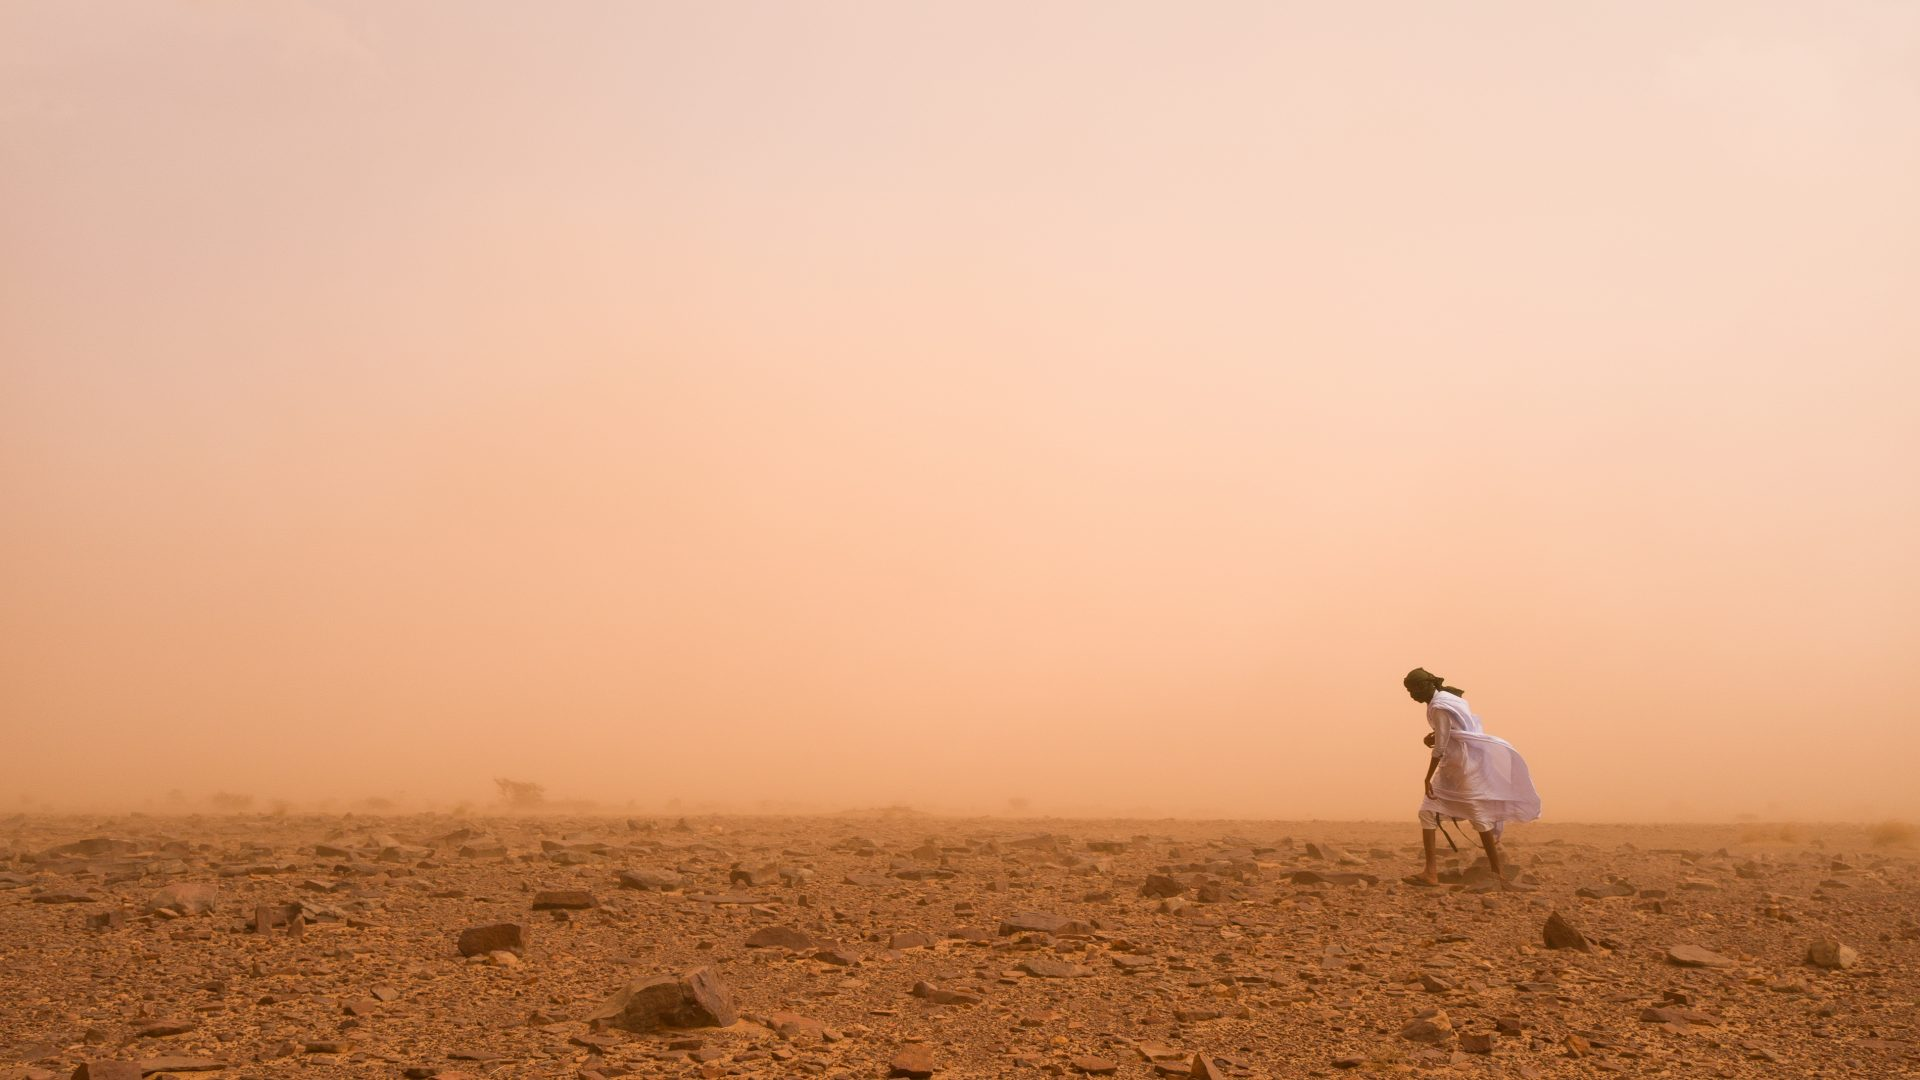 A Mauritanian man trying to walk through the strong winds of a desert sandstorm.